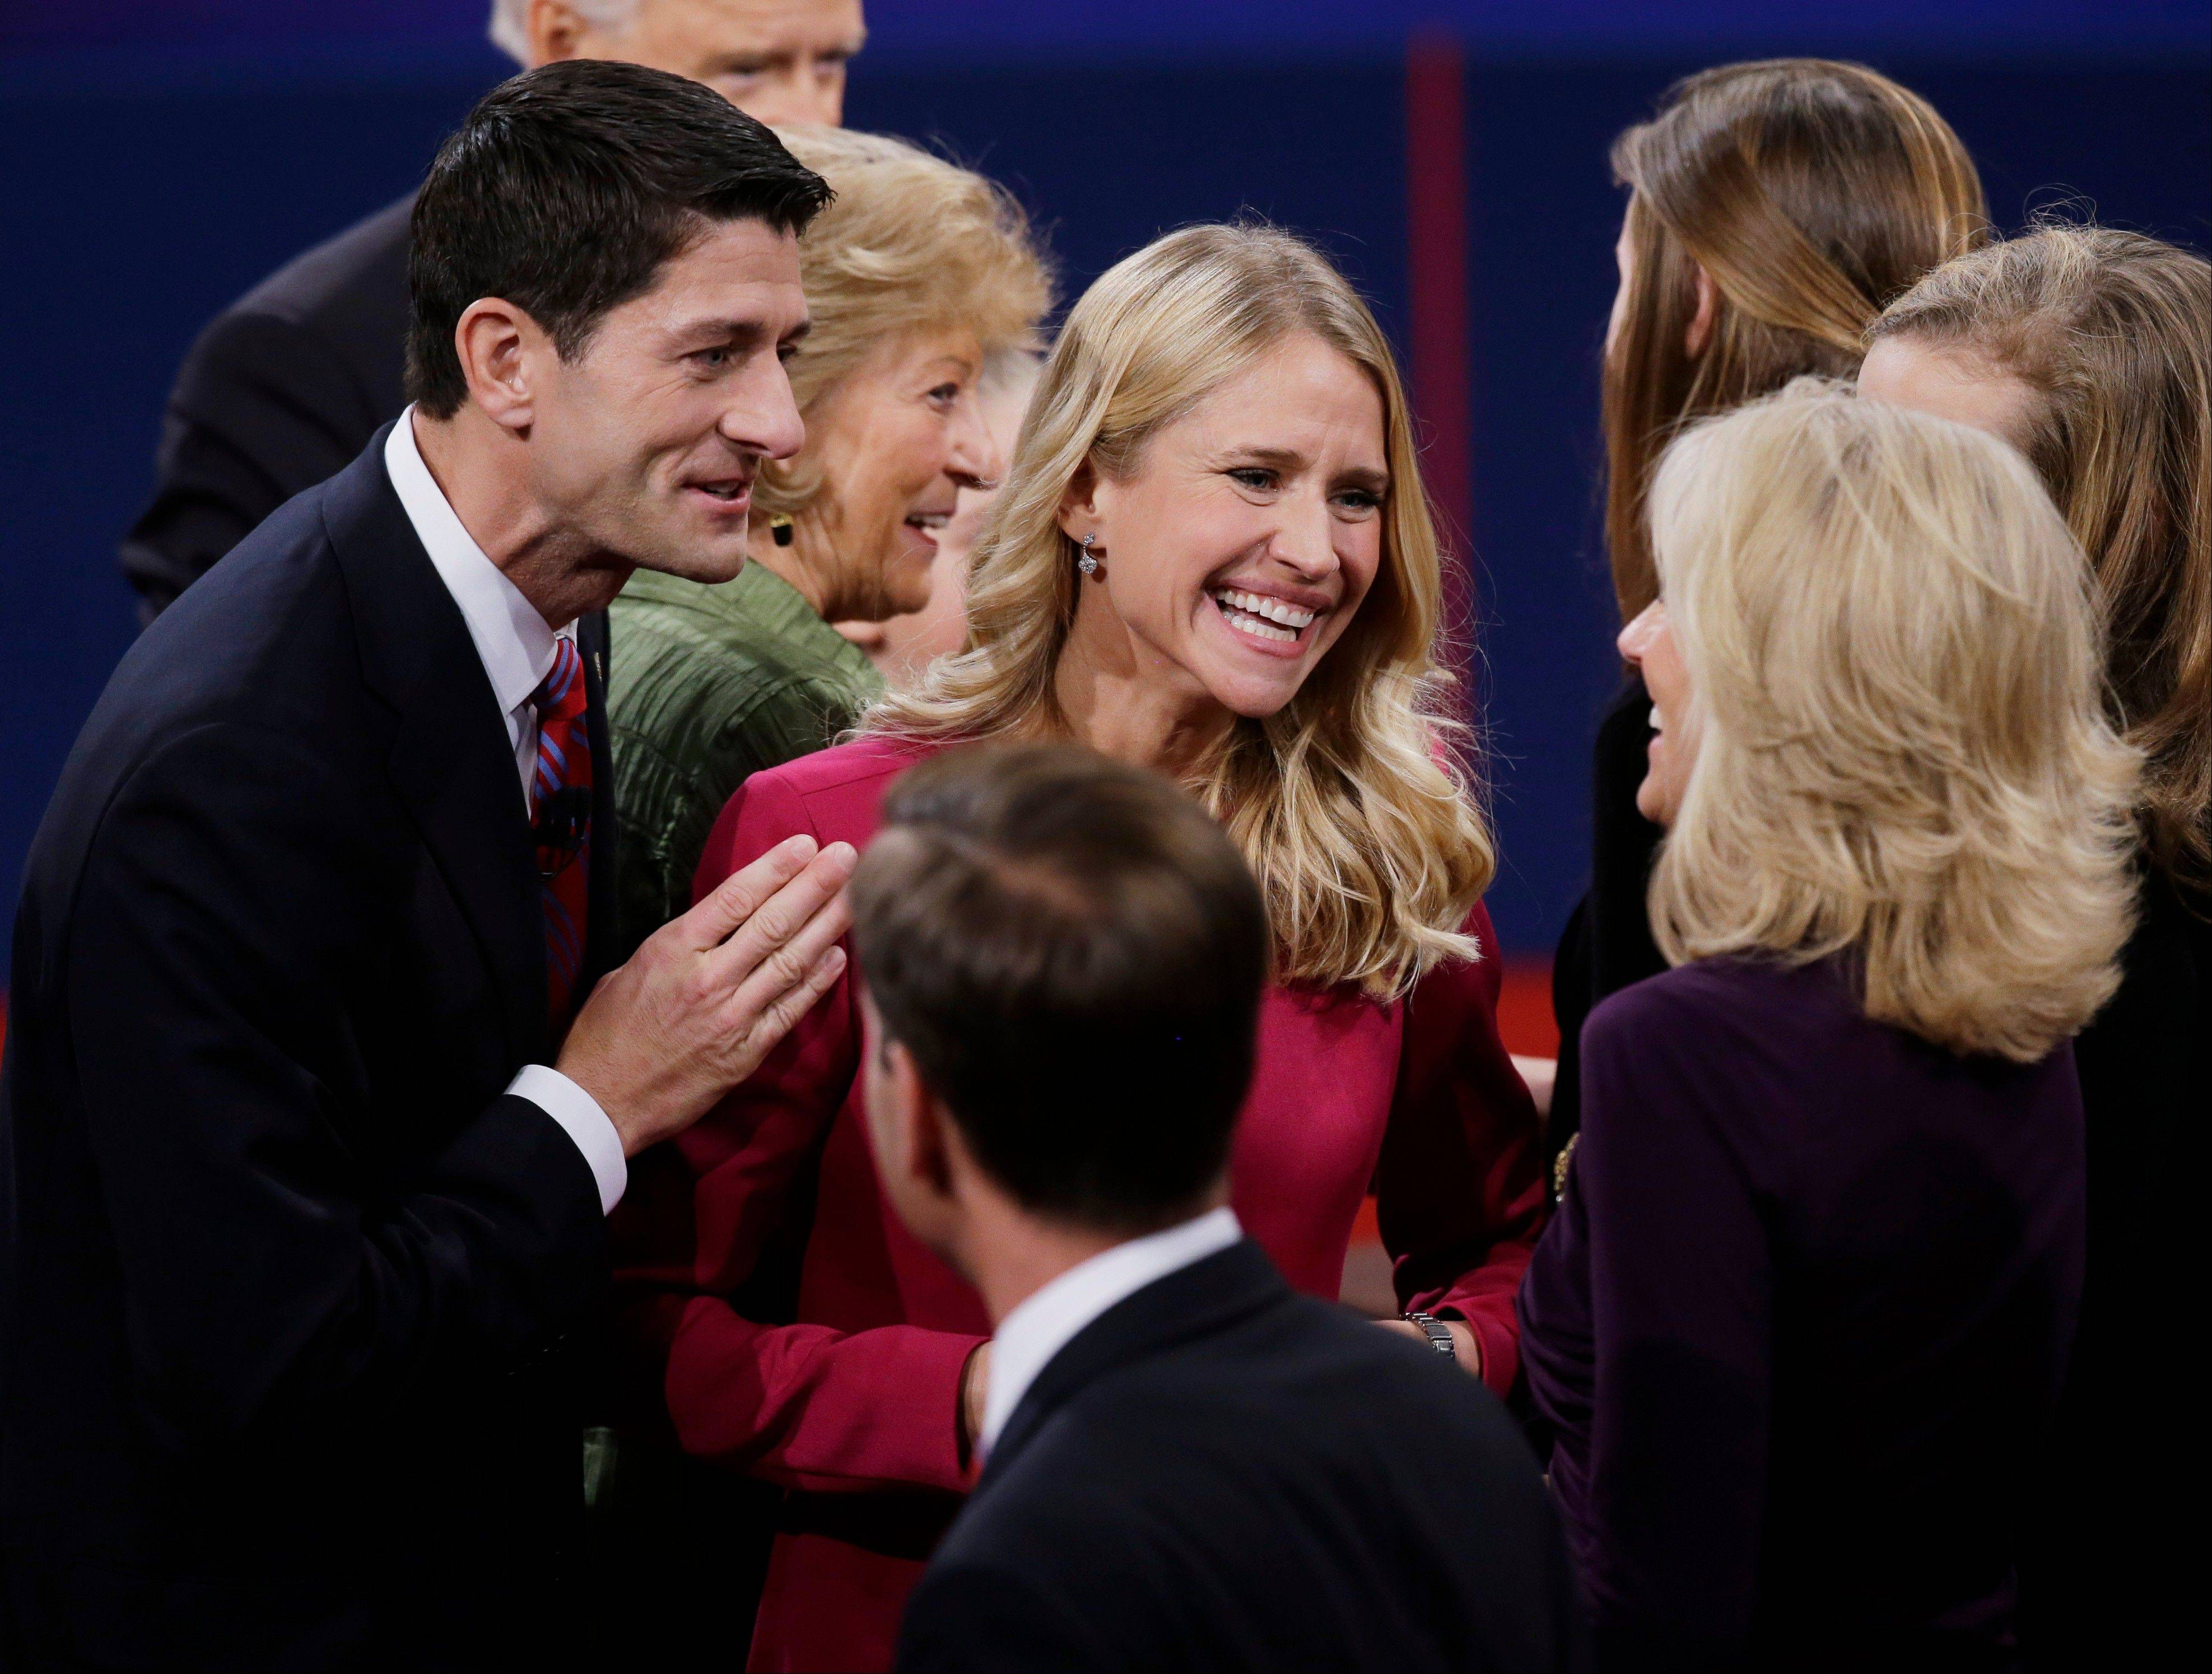 Republican vice presidential nominee Rep. Paul Ryan of Wisconsin and wife Janna Ryan talk to Jill Biden, wife of Vice President Joe Biden, after the vice presidential debate Thursday.